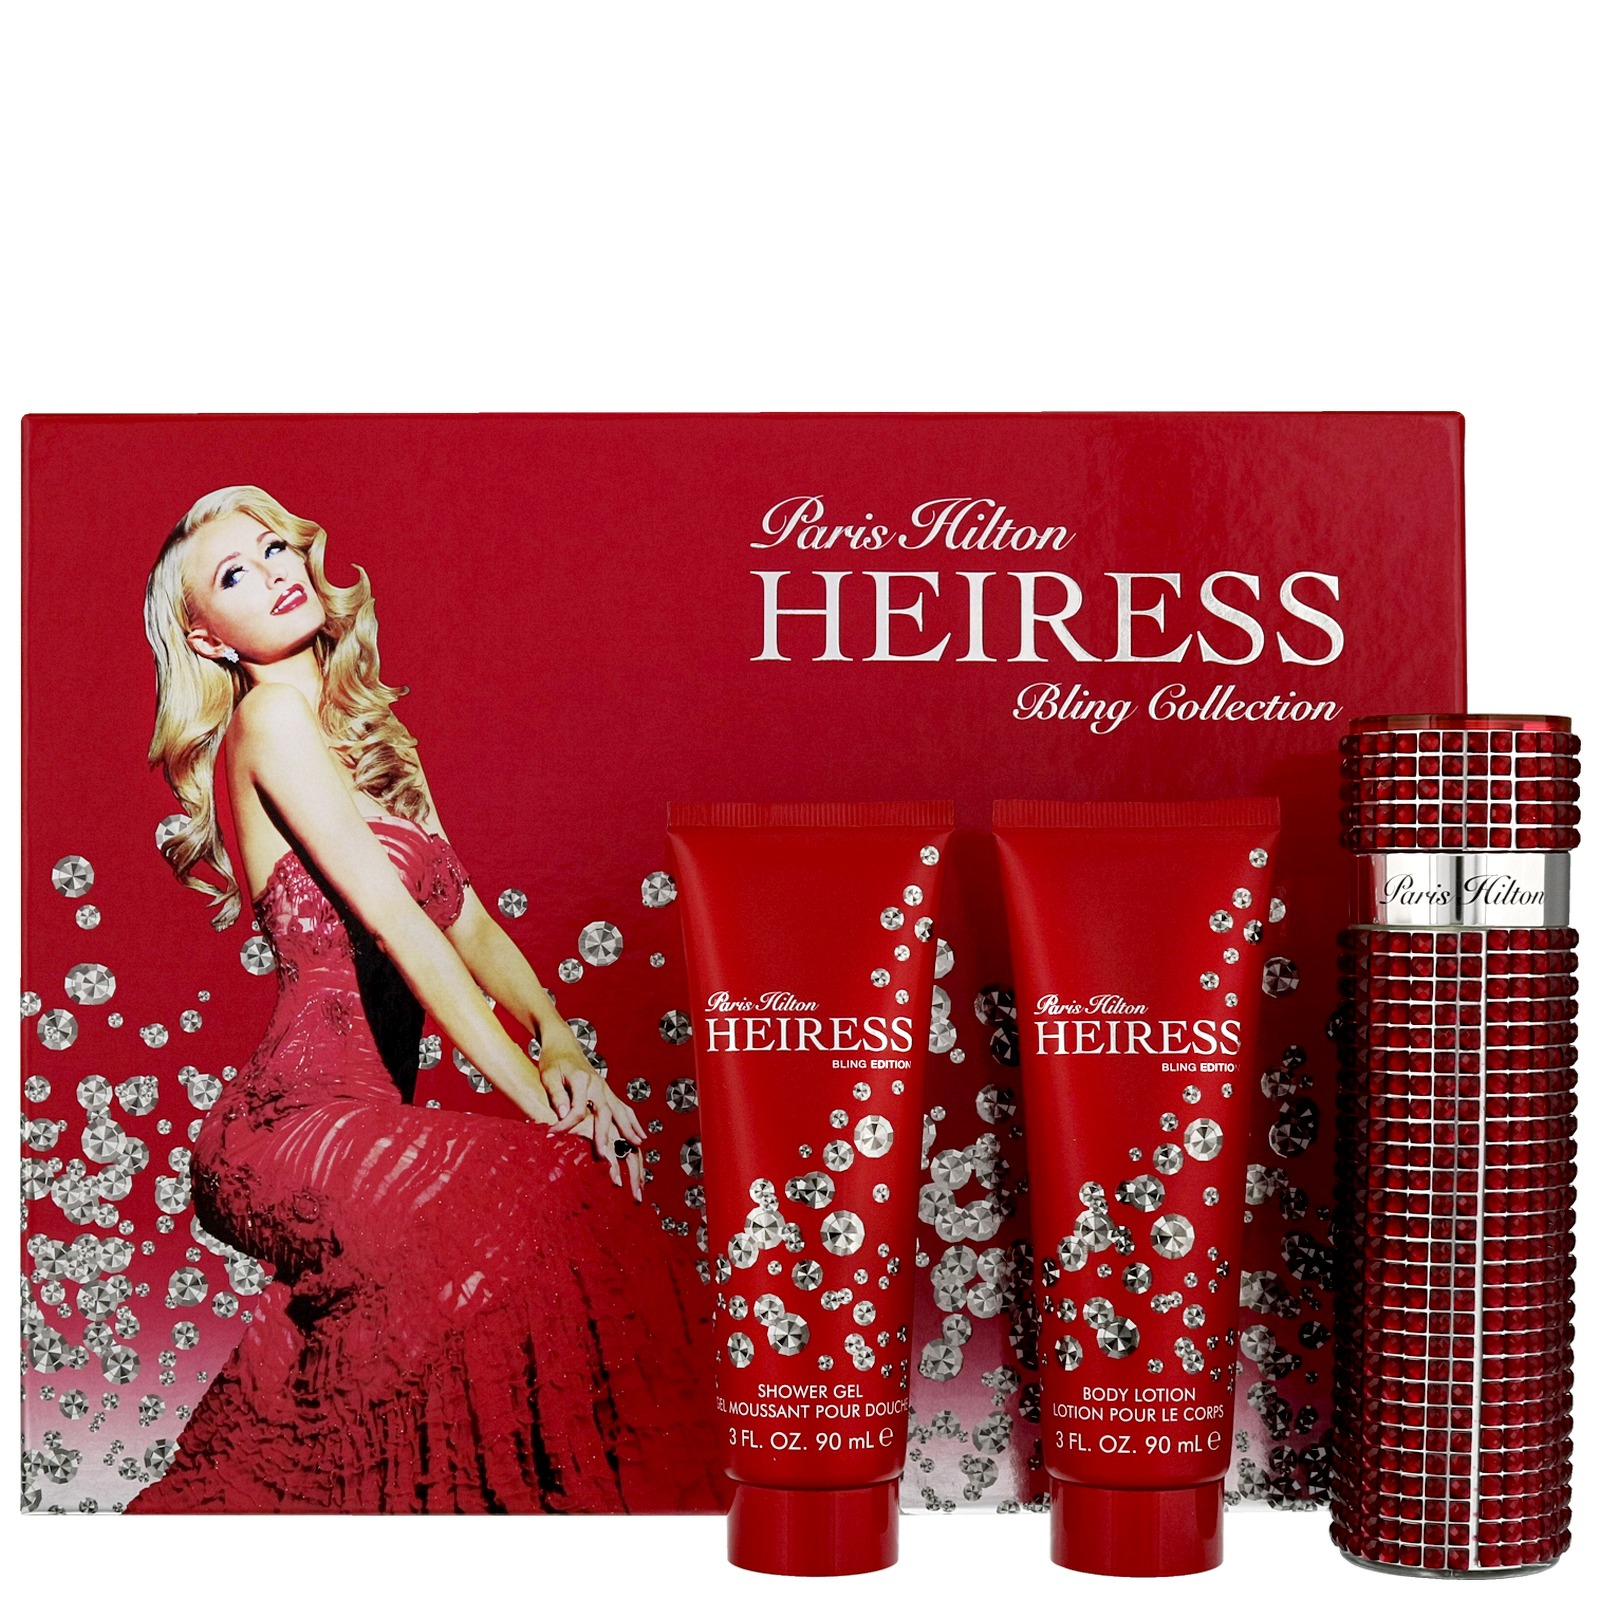 Paris Hilton Heiress Bling Collection Eau de Parfum Spray 100ml Gift Set